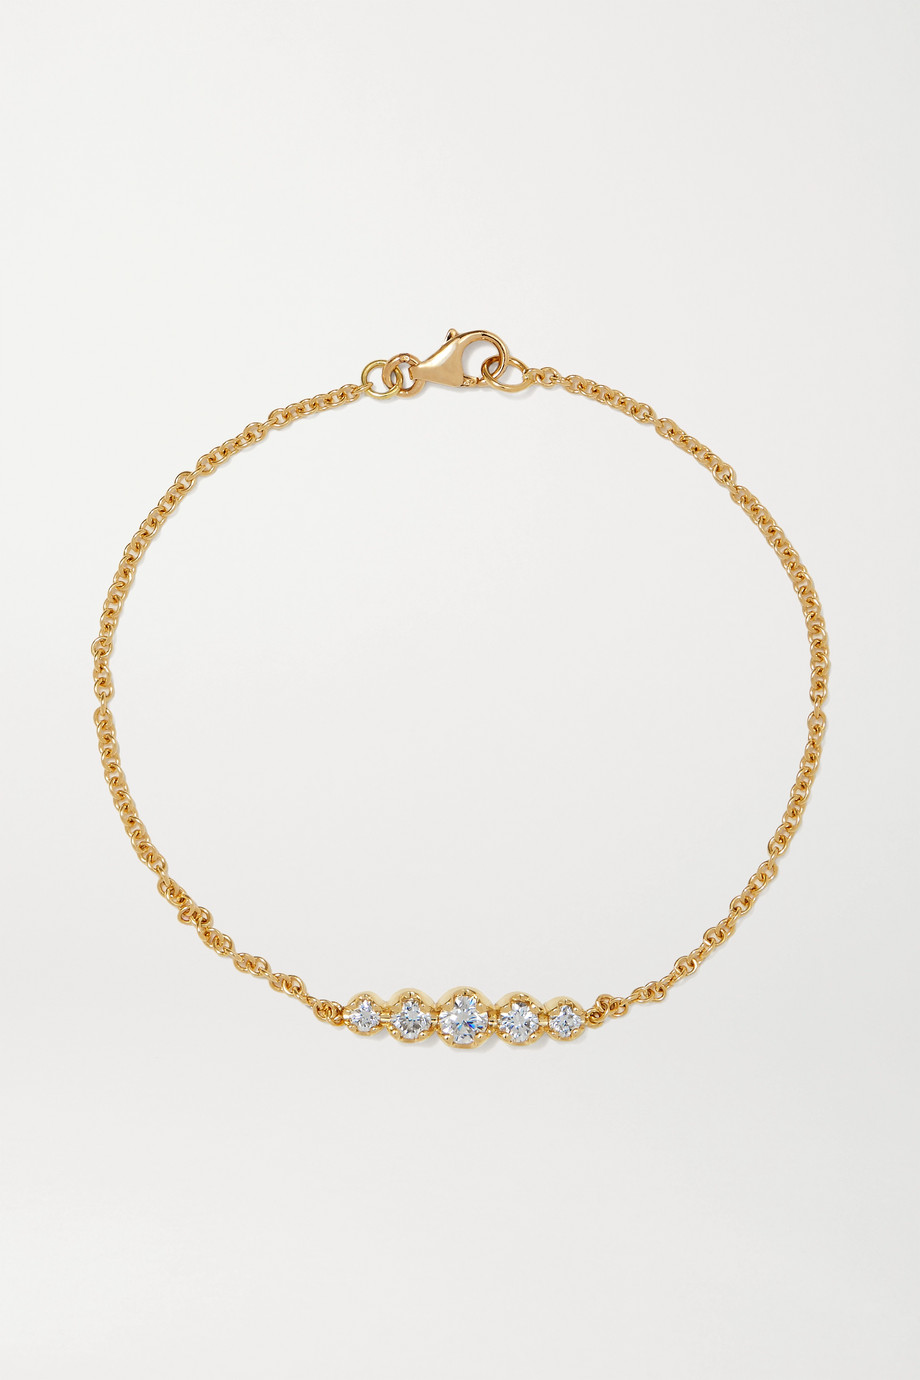 Jennifer Meyer Bracelet en or 18 carats et diamants